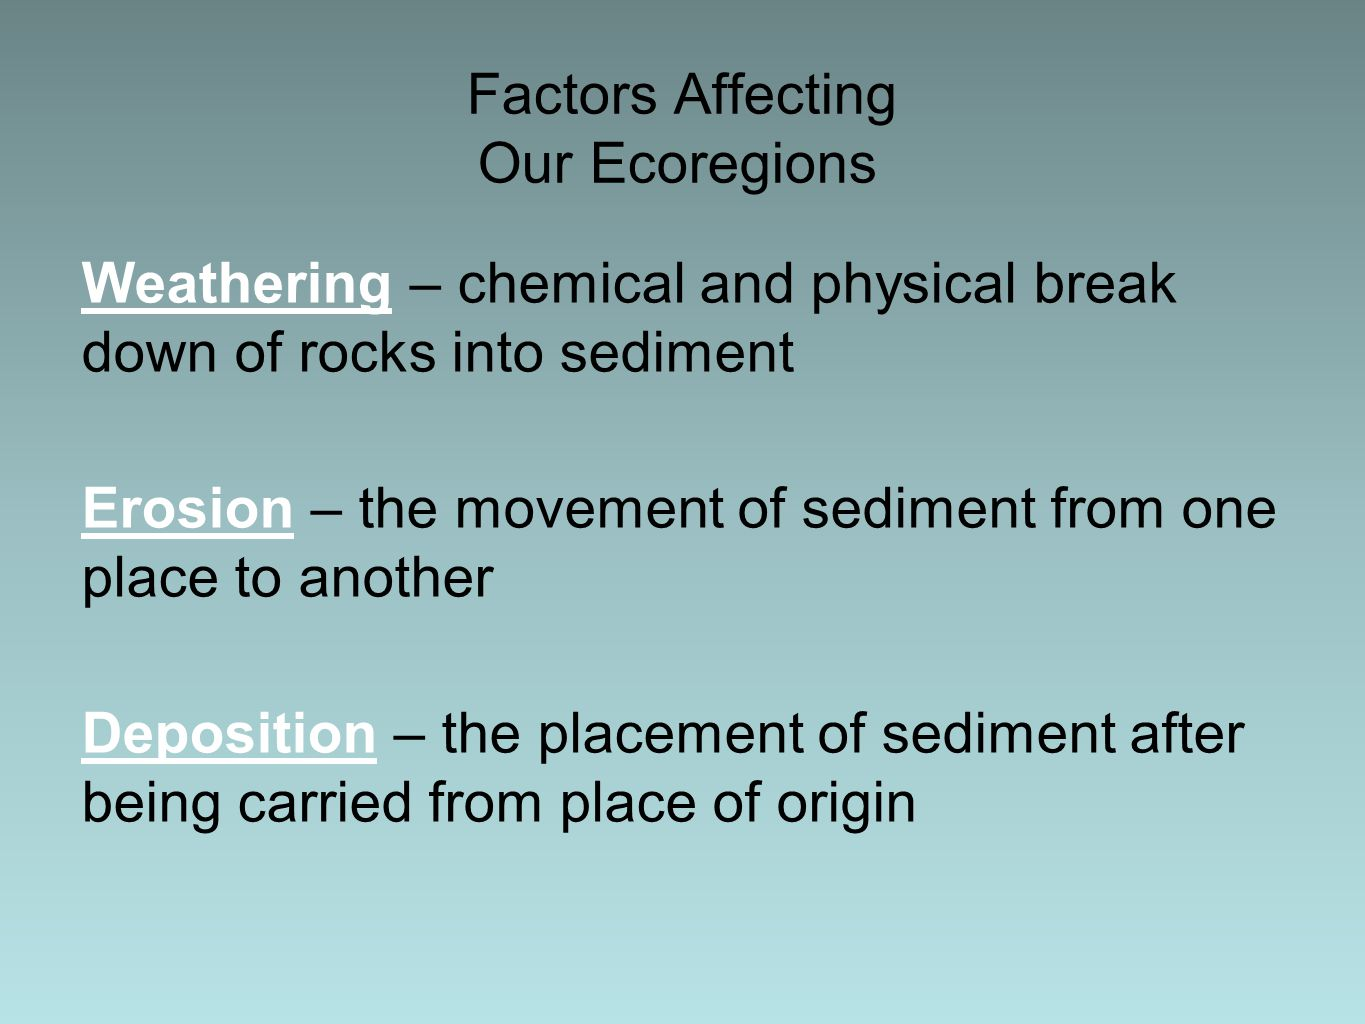 Factors Affecting Our Ecoregions